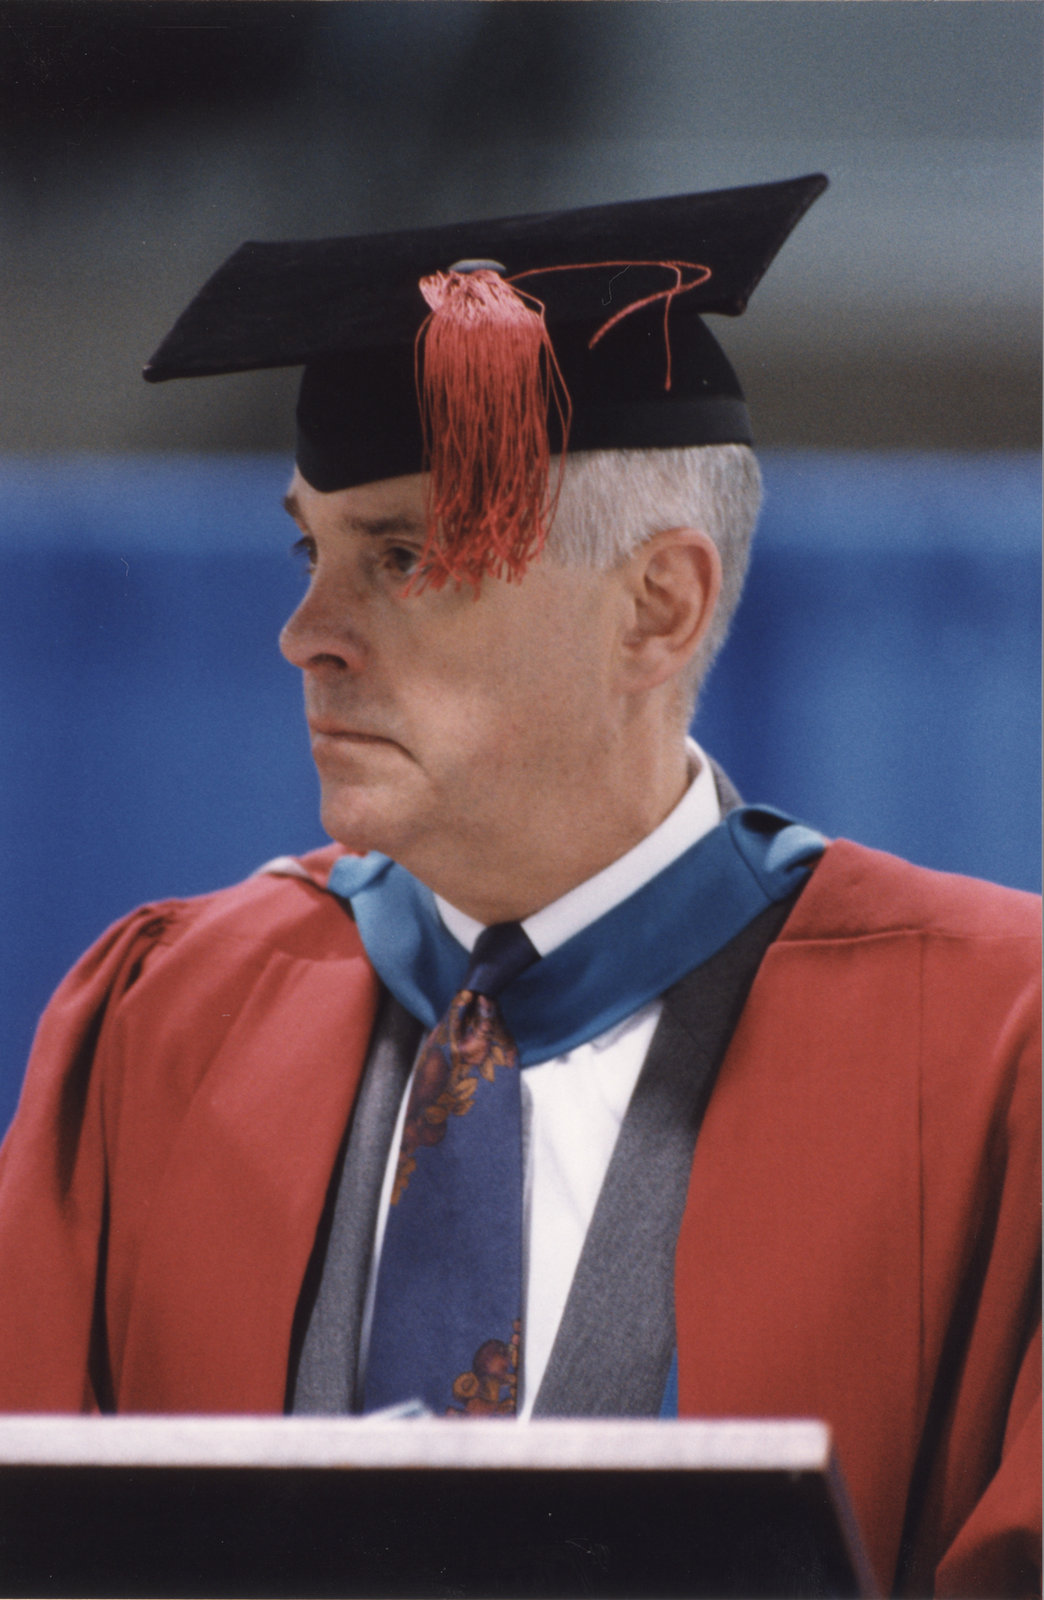 Rowland Smith at spring convocation 1998